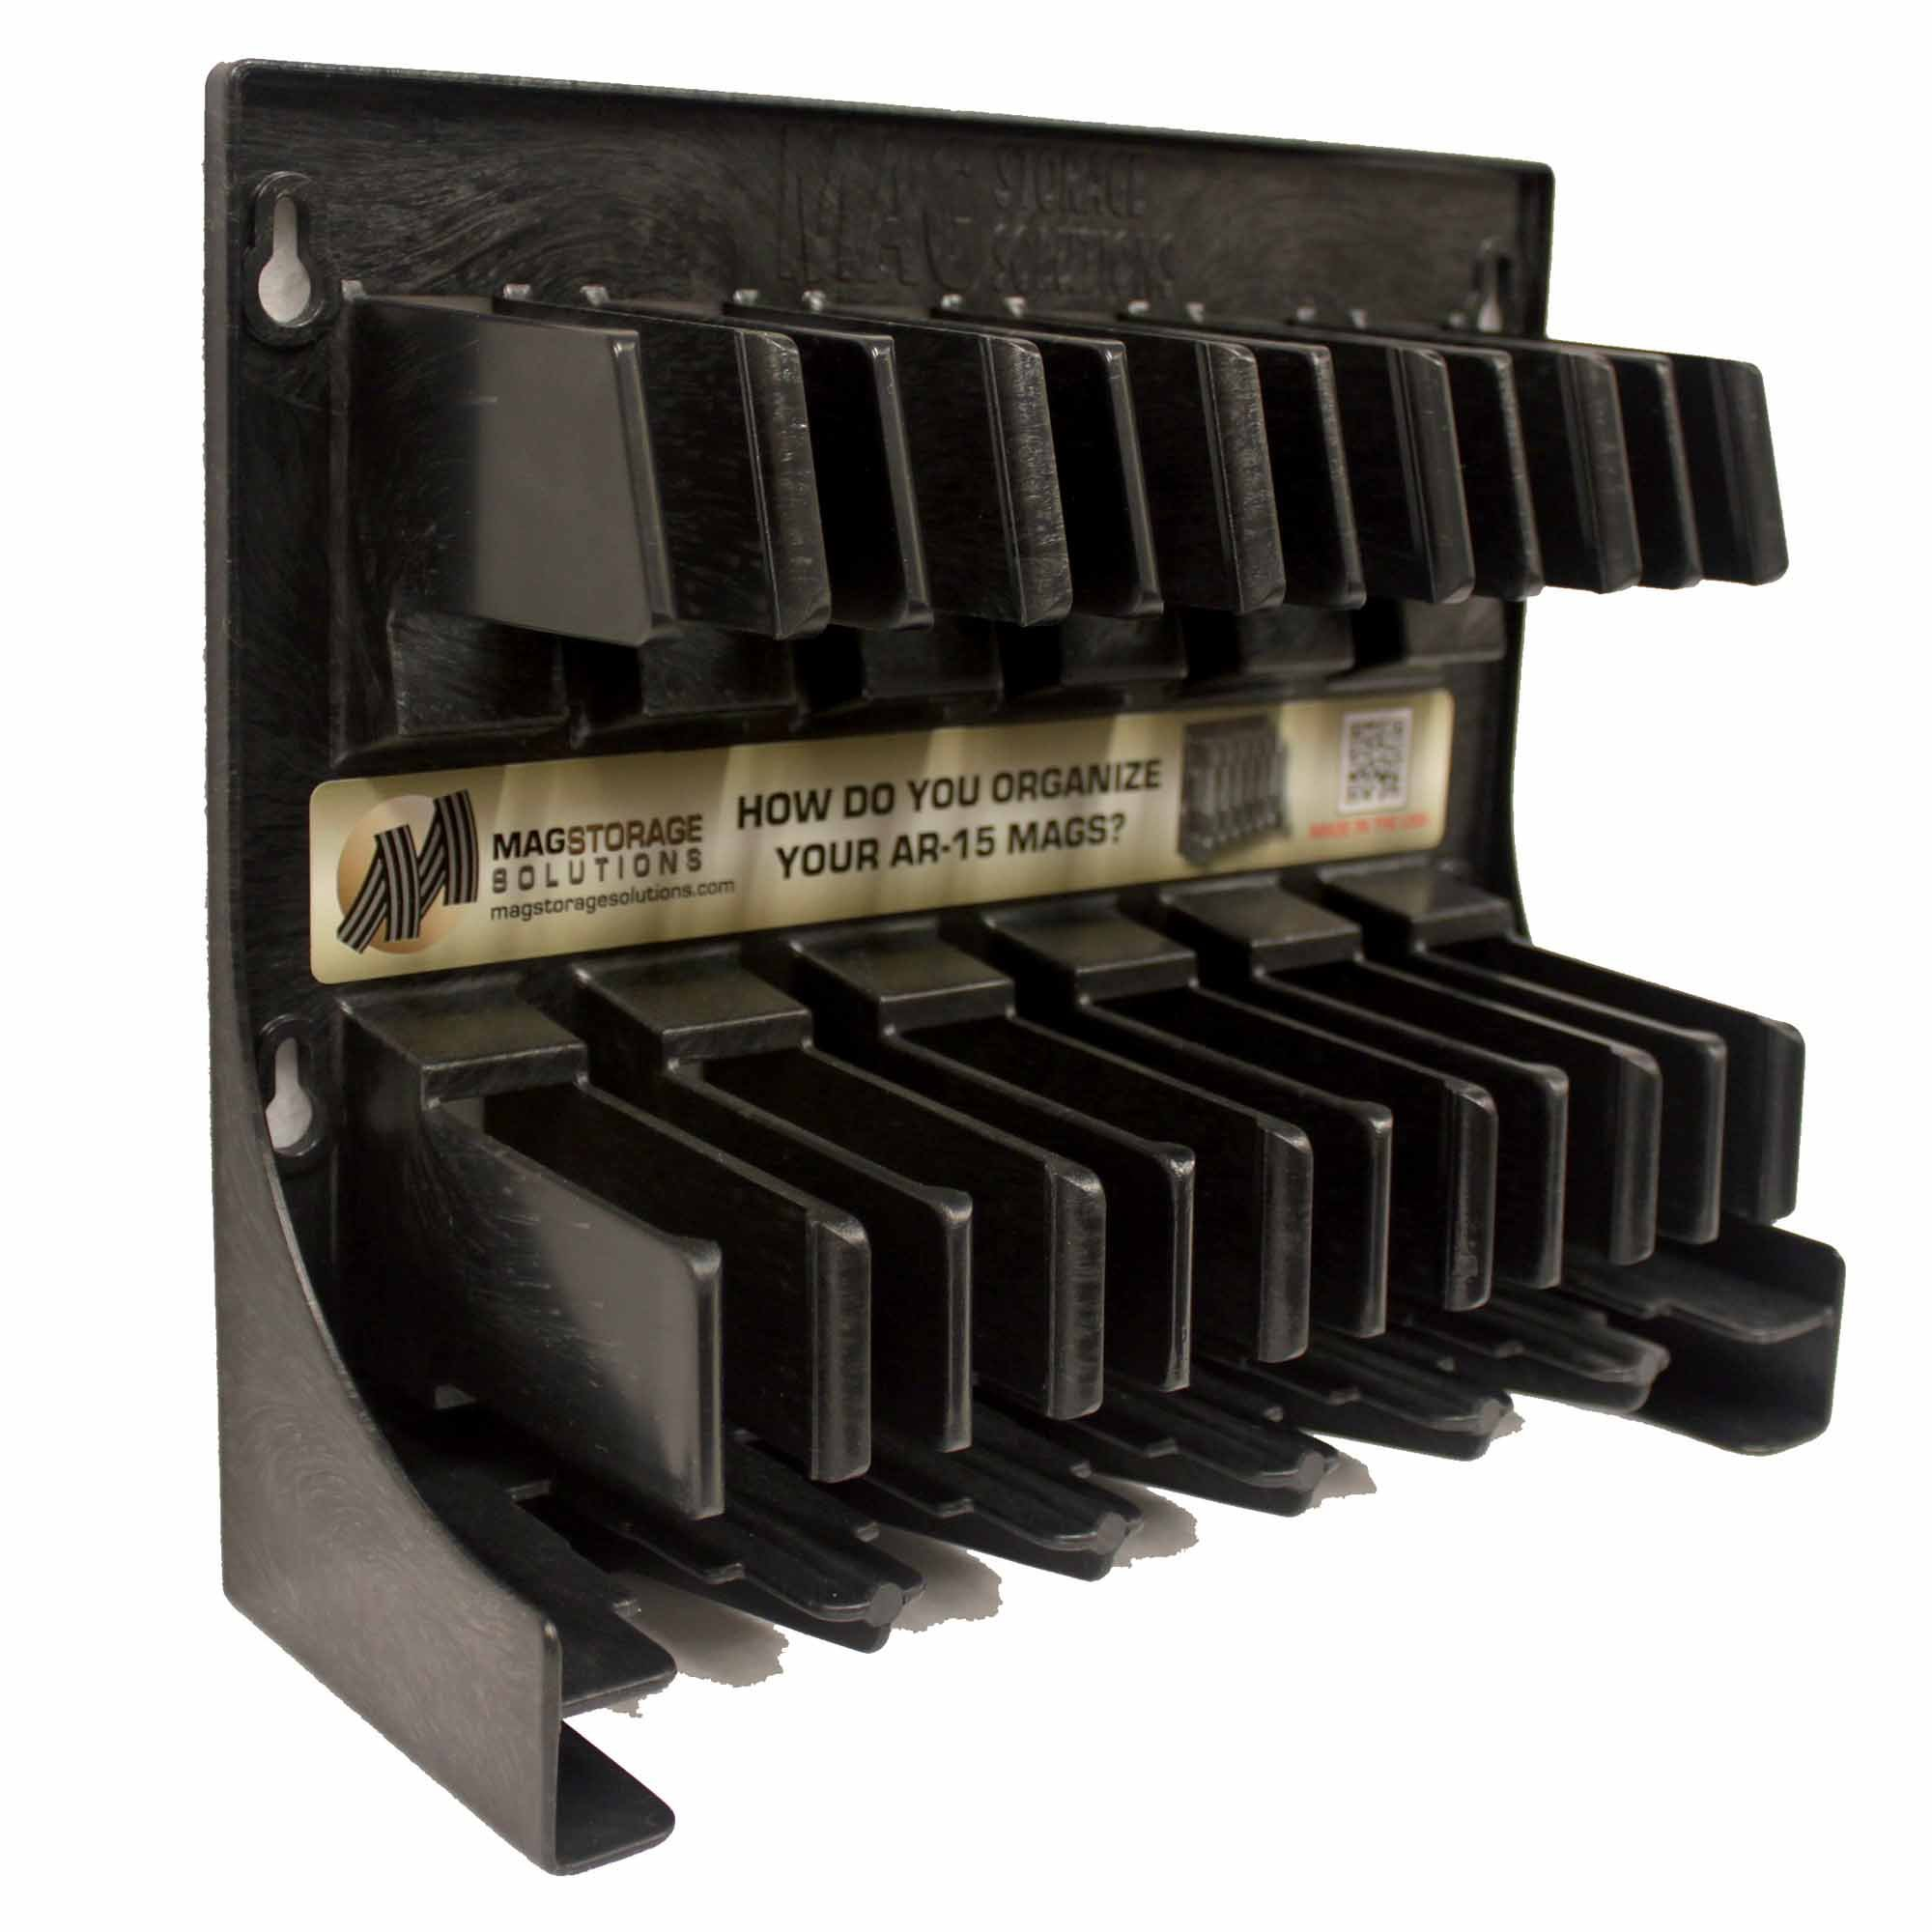 Mag Storage Solutions 5.56 .223 MagHolder Magazine Holder Storage Rack Magpul by MagStorage Solutions (Image #2)